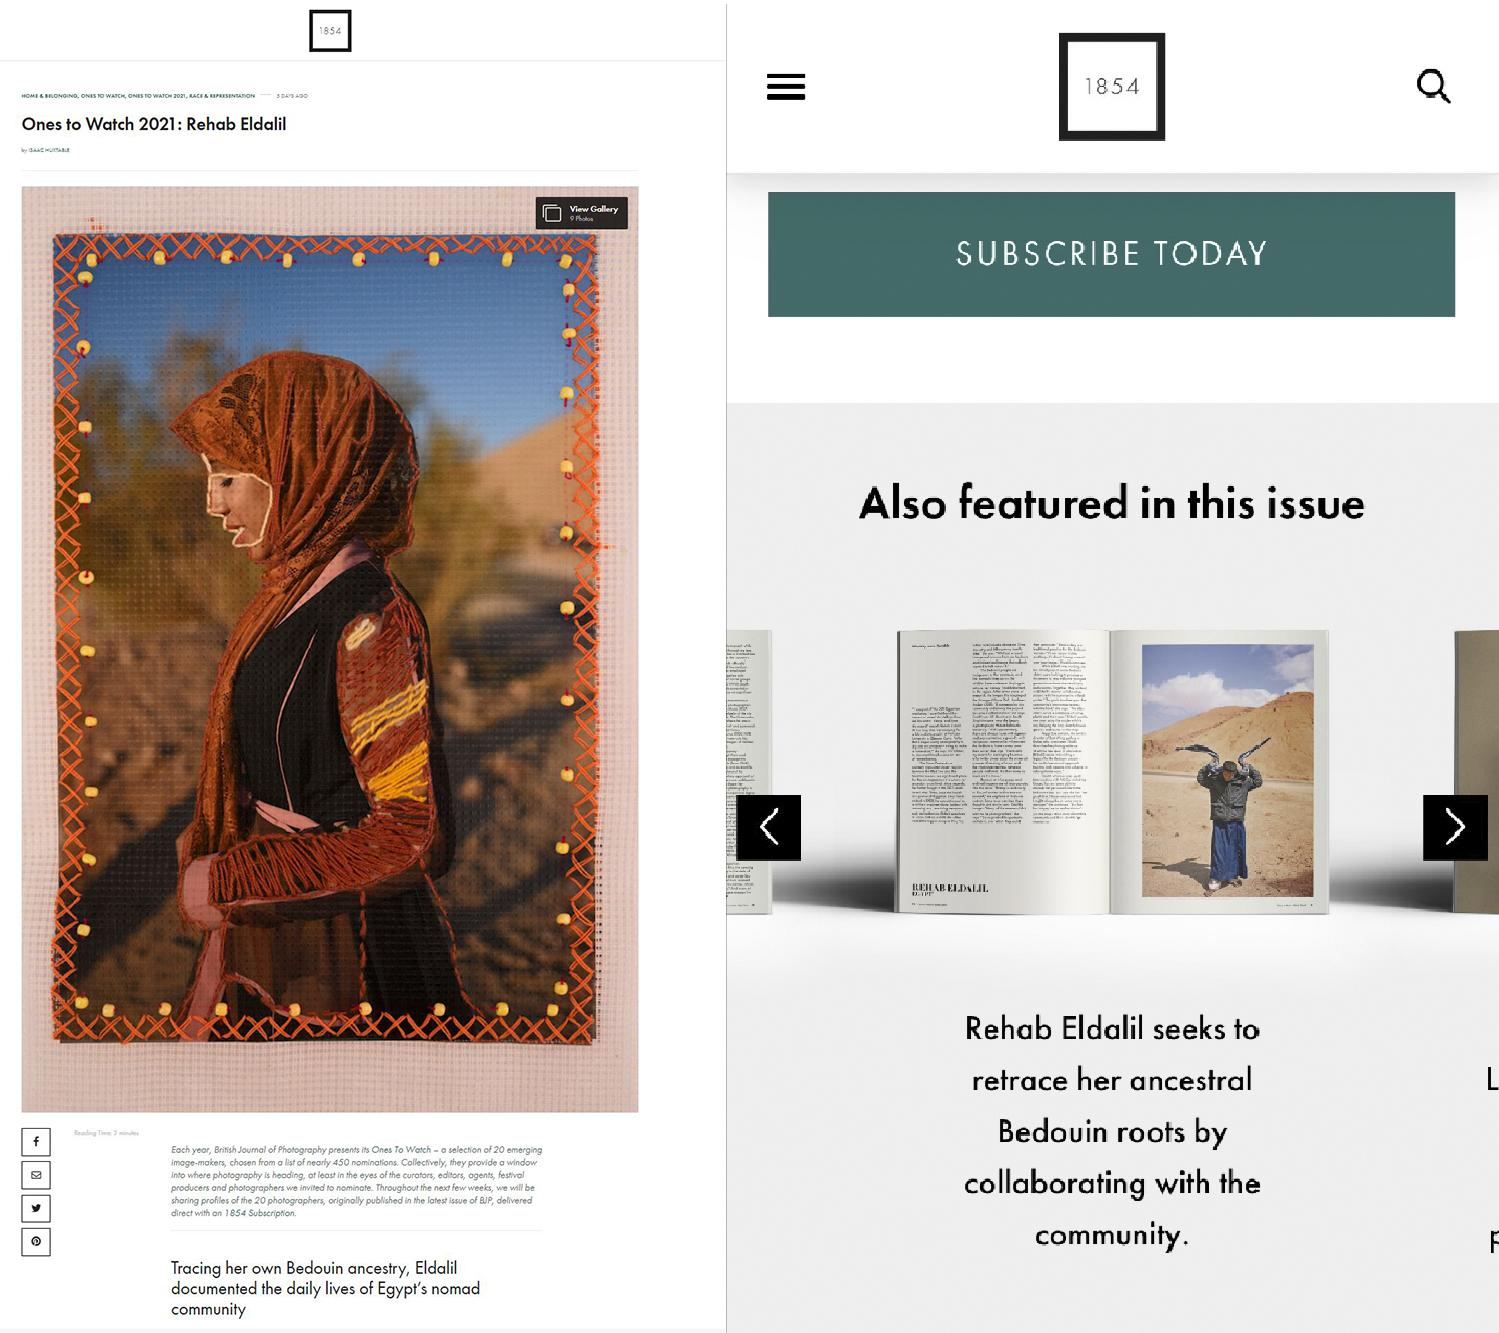 The British Journal Of Photography's, One's To Watch print and digital feature, 2021 https://www.1854.photography/2021/09/ones-to-watch-2021-rehab-eldalil/